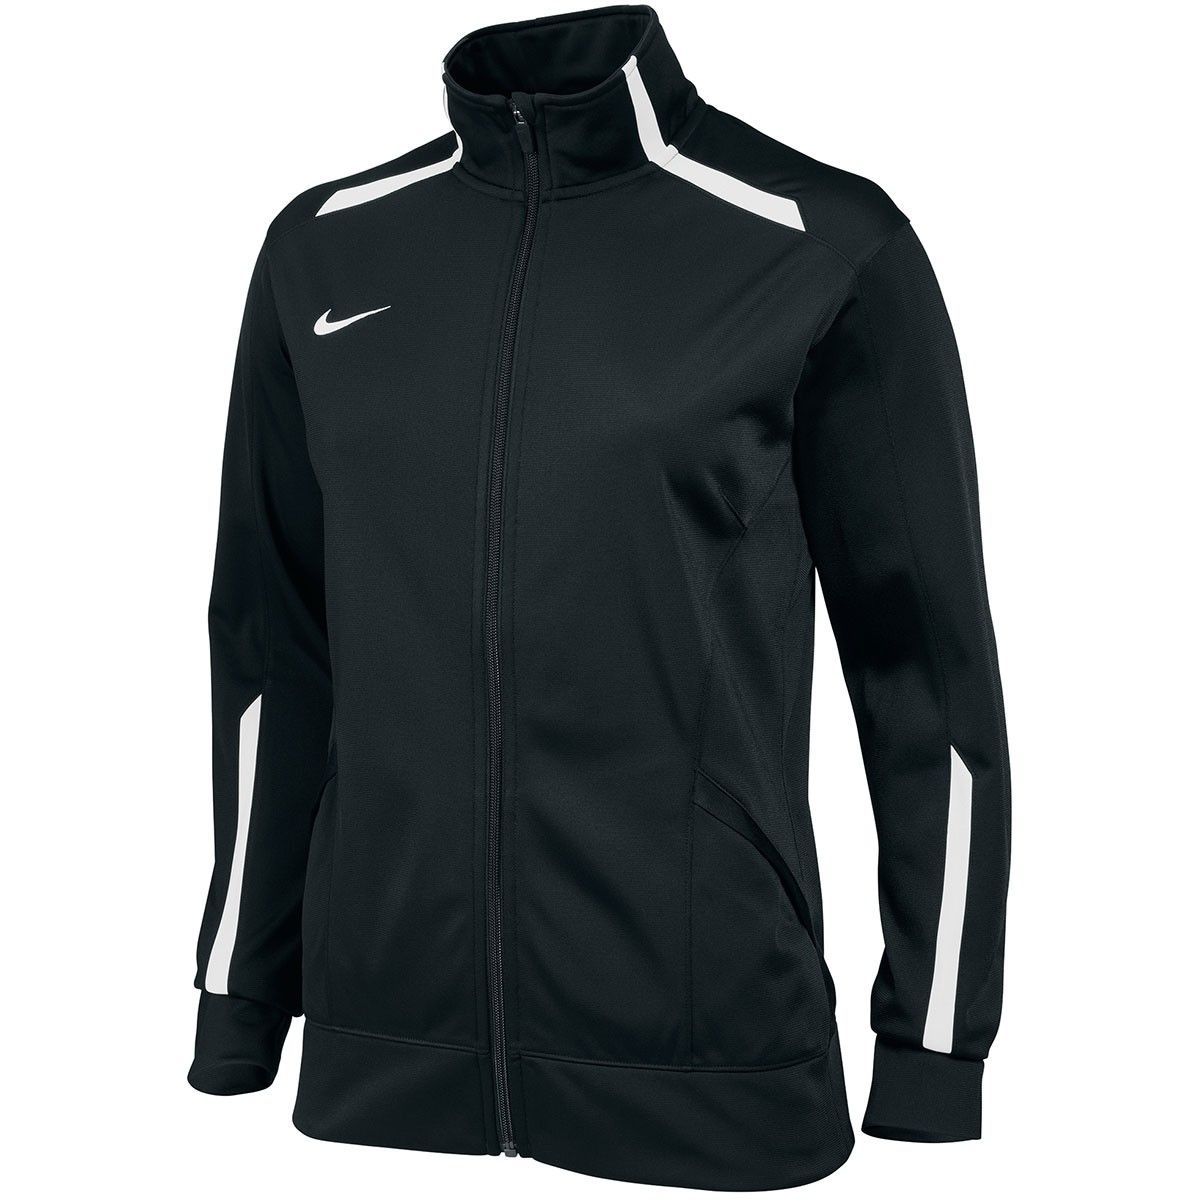 8fa85314f3a1 NIKE SWIM Women s Overtime Jacket - Metro Swim Shop